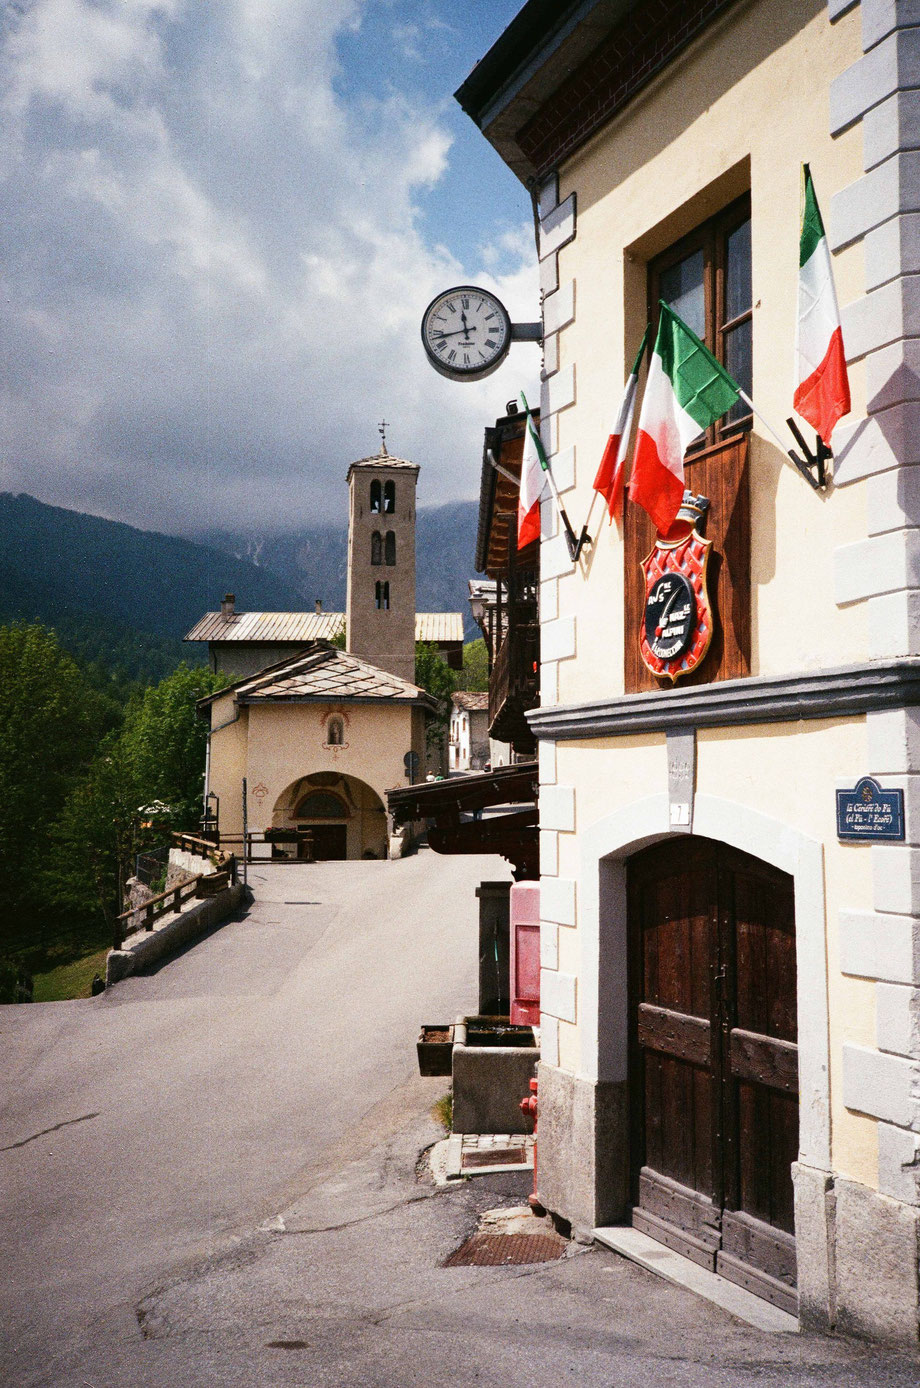 Les Arnauds, Bardonecchia. Il borgo. (With Olympus XA2 and Agfa Vista Plus 200 Film)